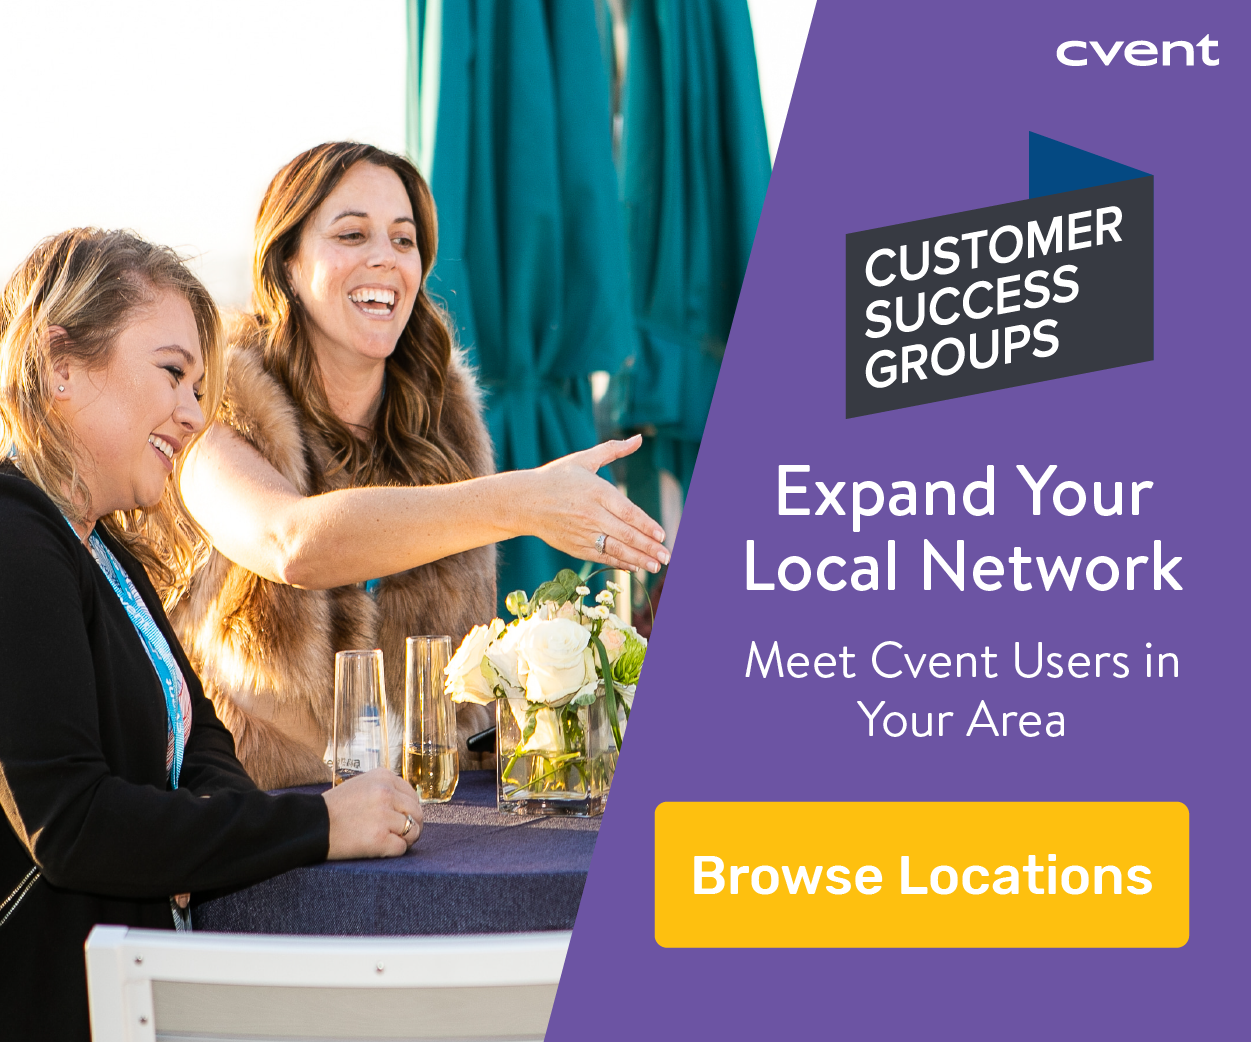 Cvent Customer Success Group